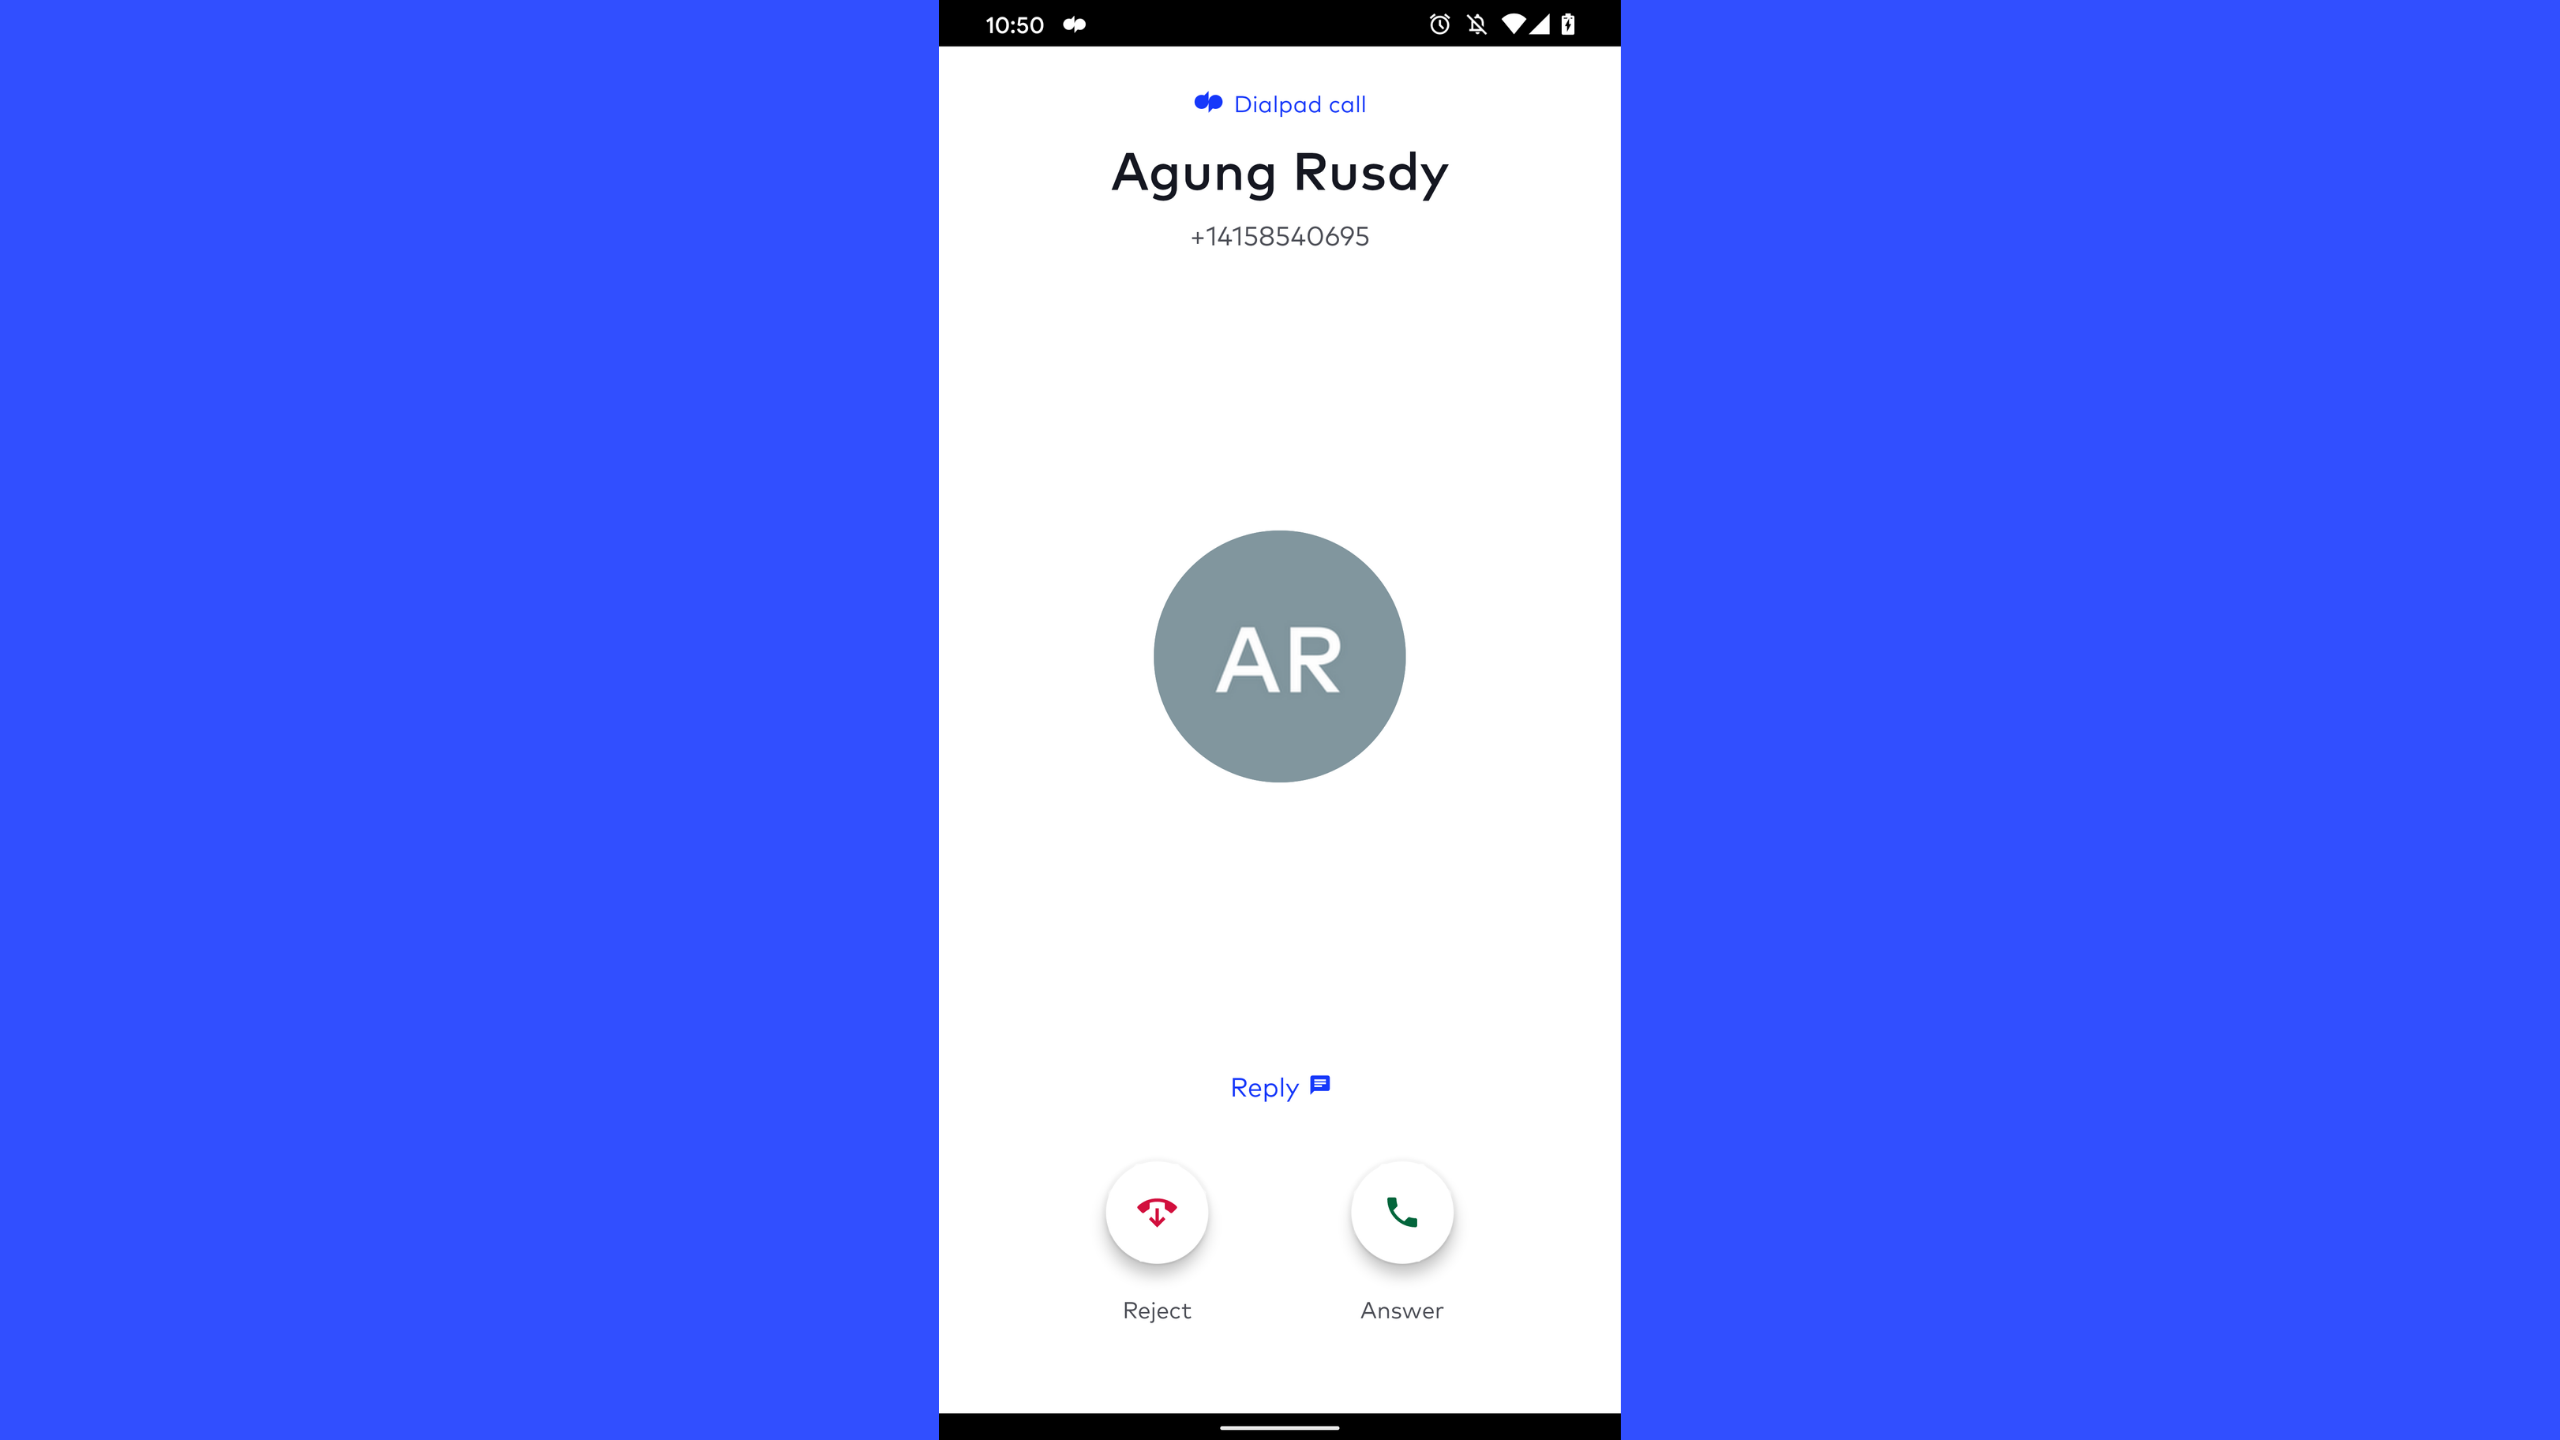 dp-android-incoming-call-screen-fall2020.png